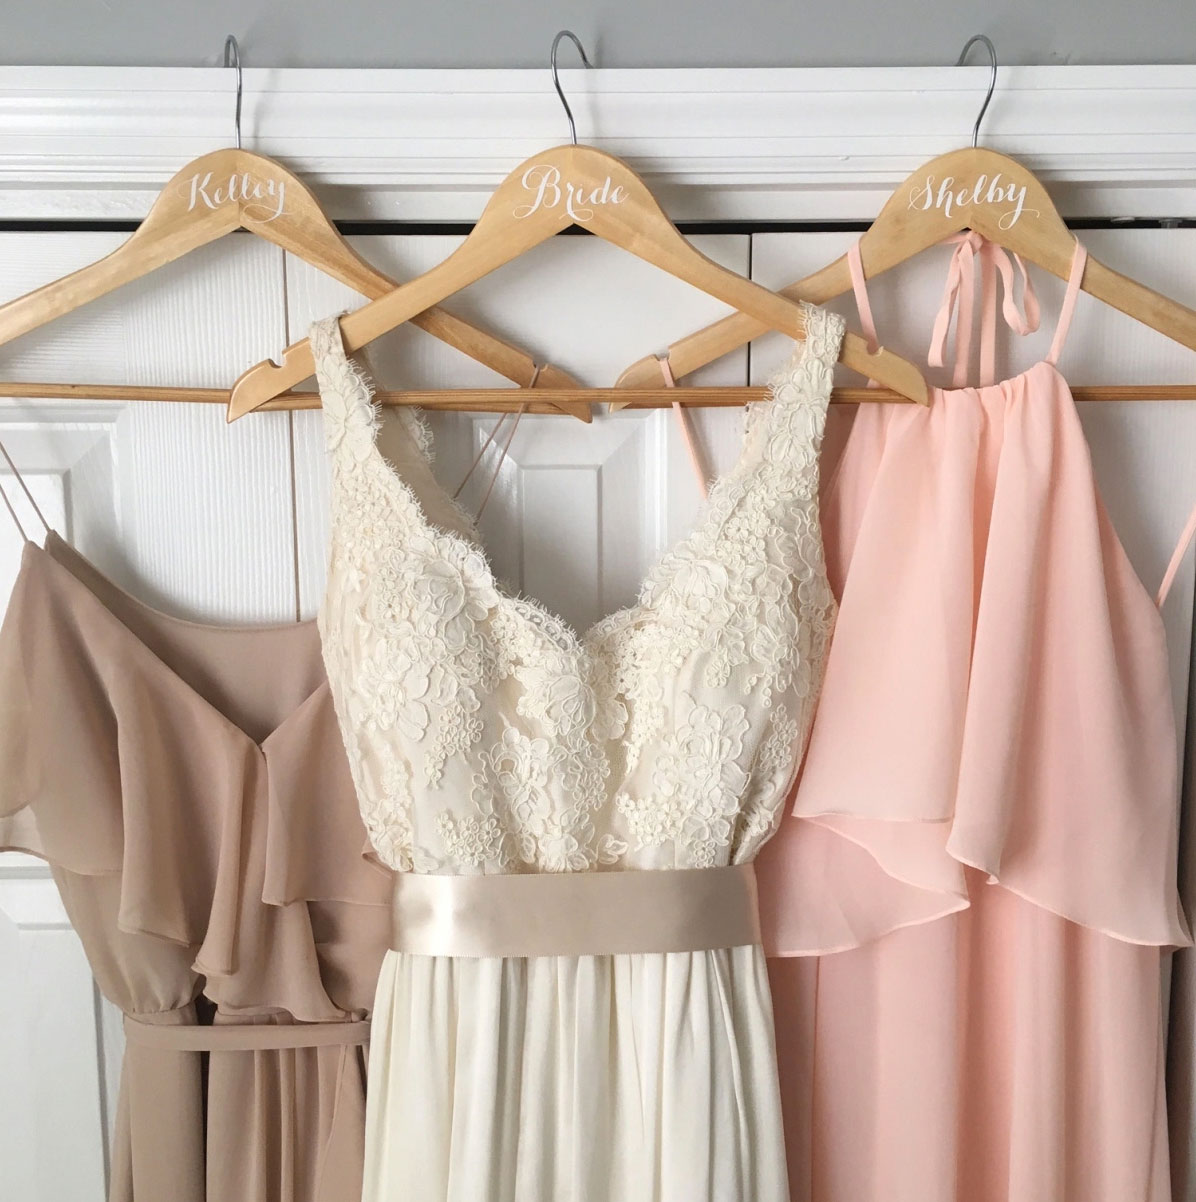 Personalize hangers for your bridal party